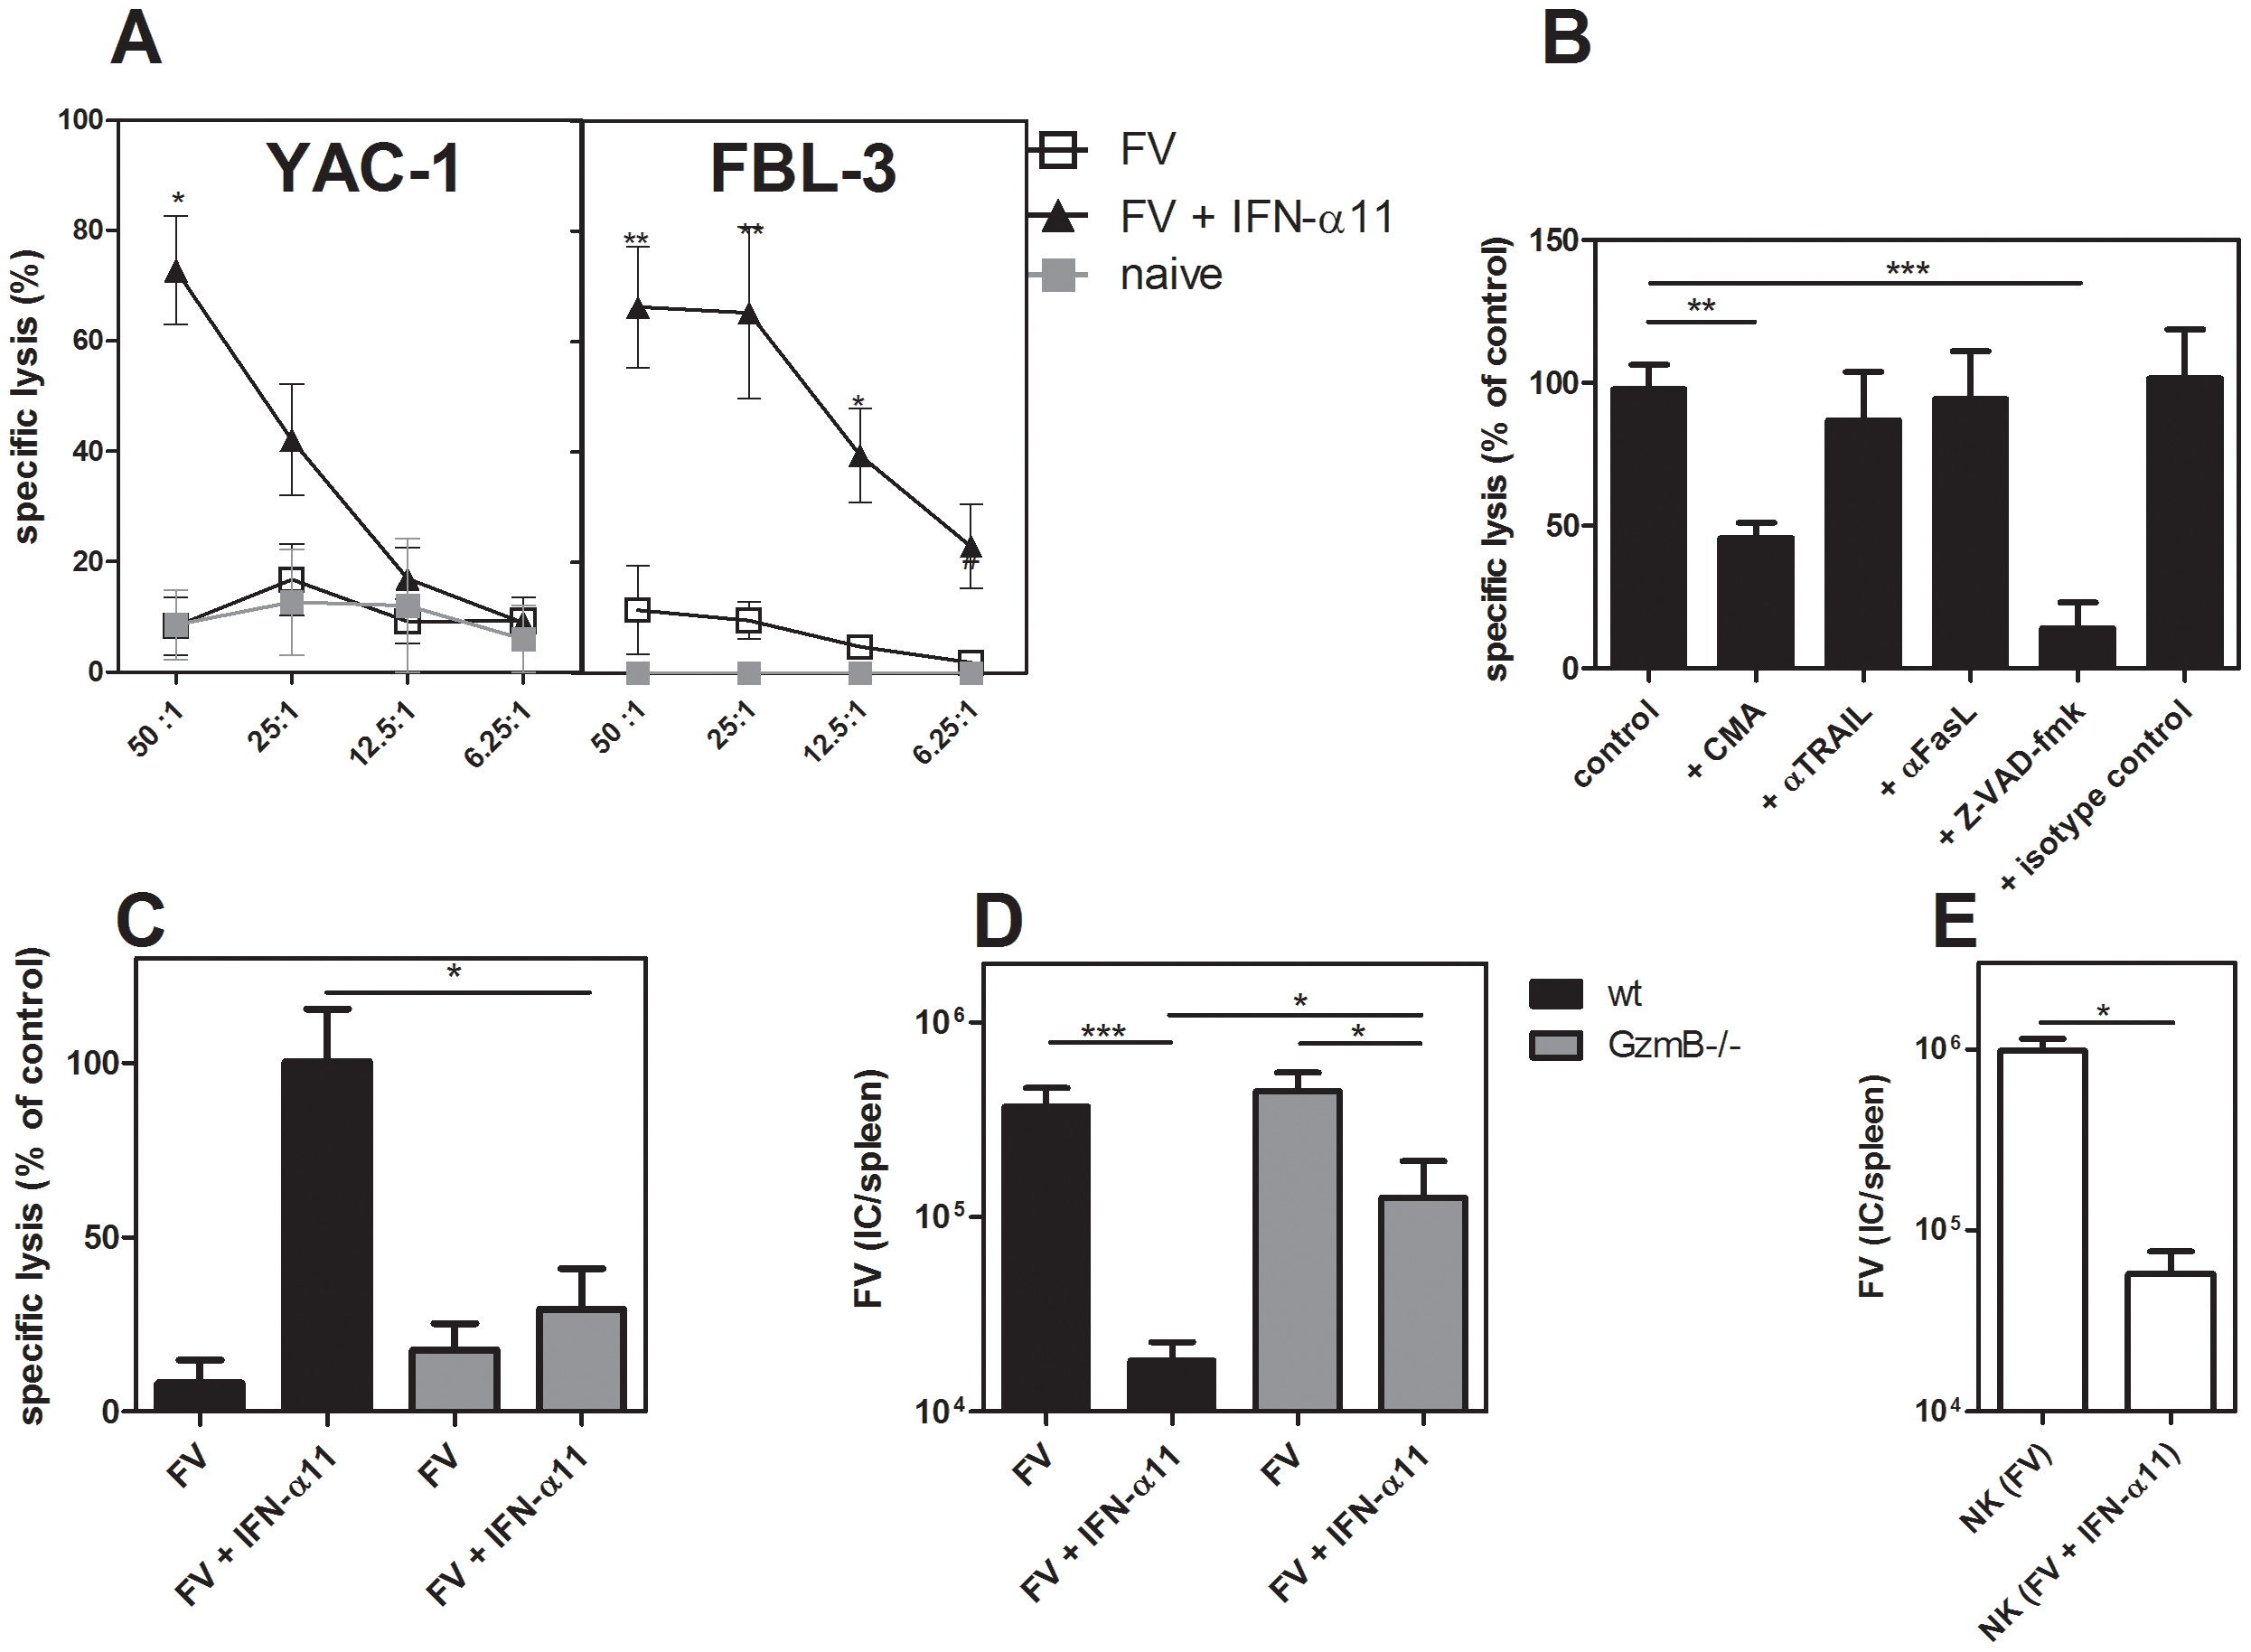 Target cell killing by NK cells from IFN-α11-treated mice.